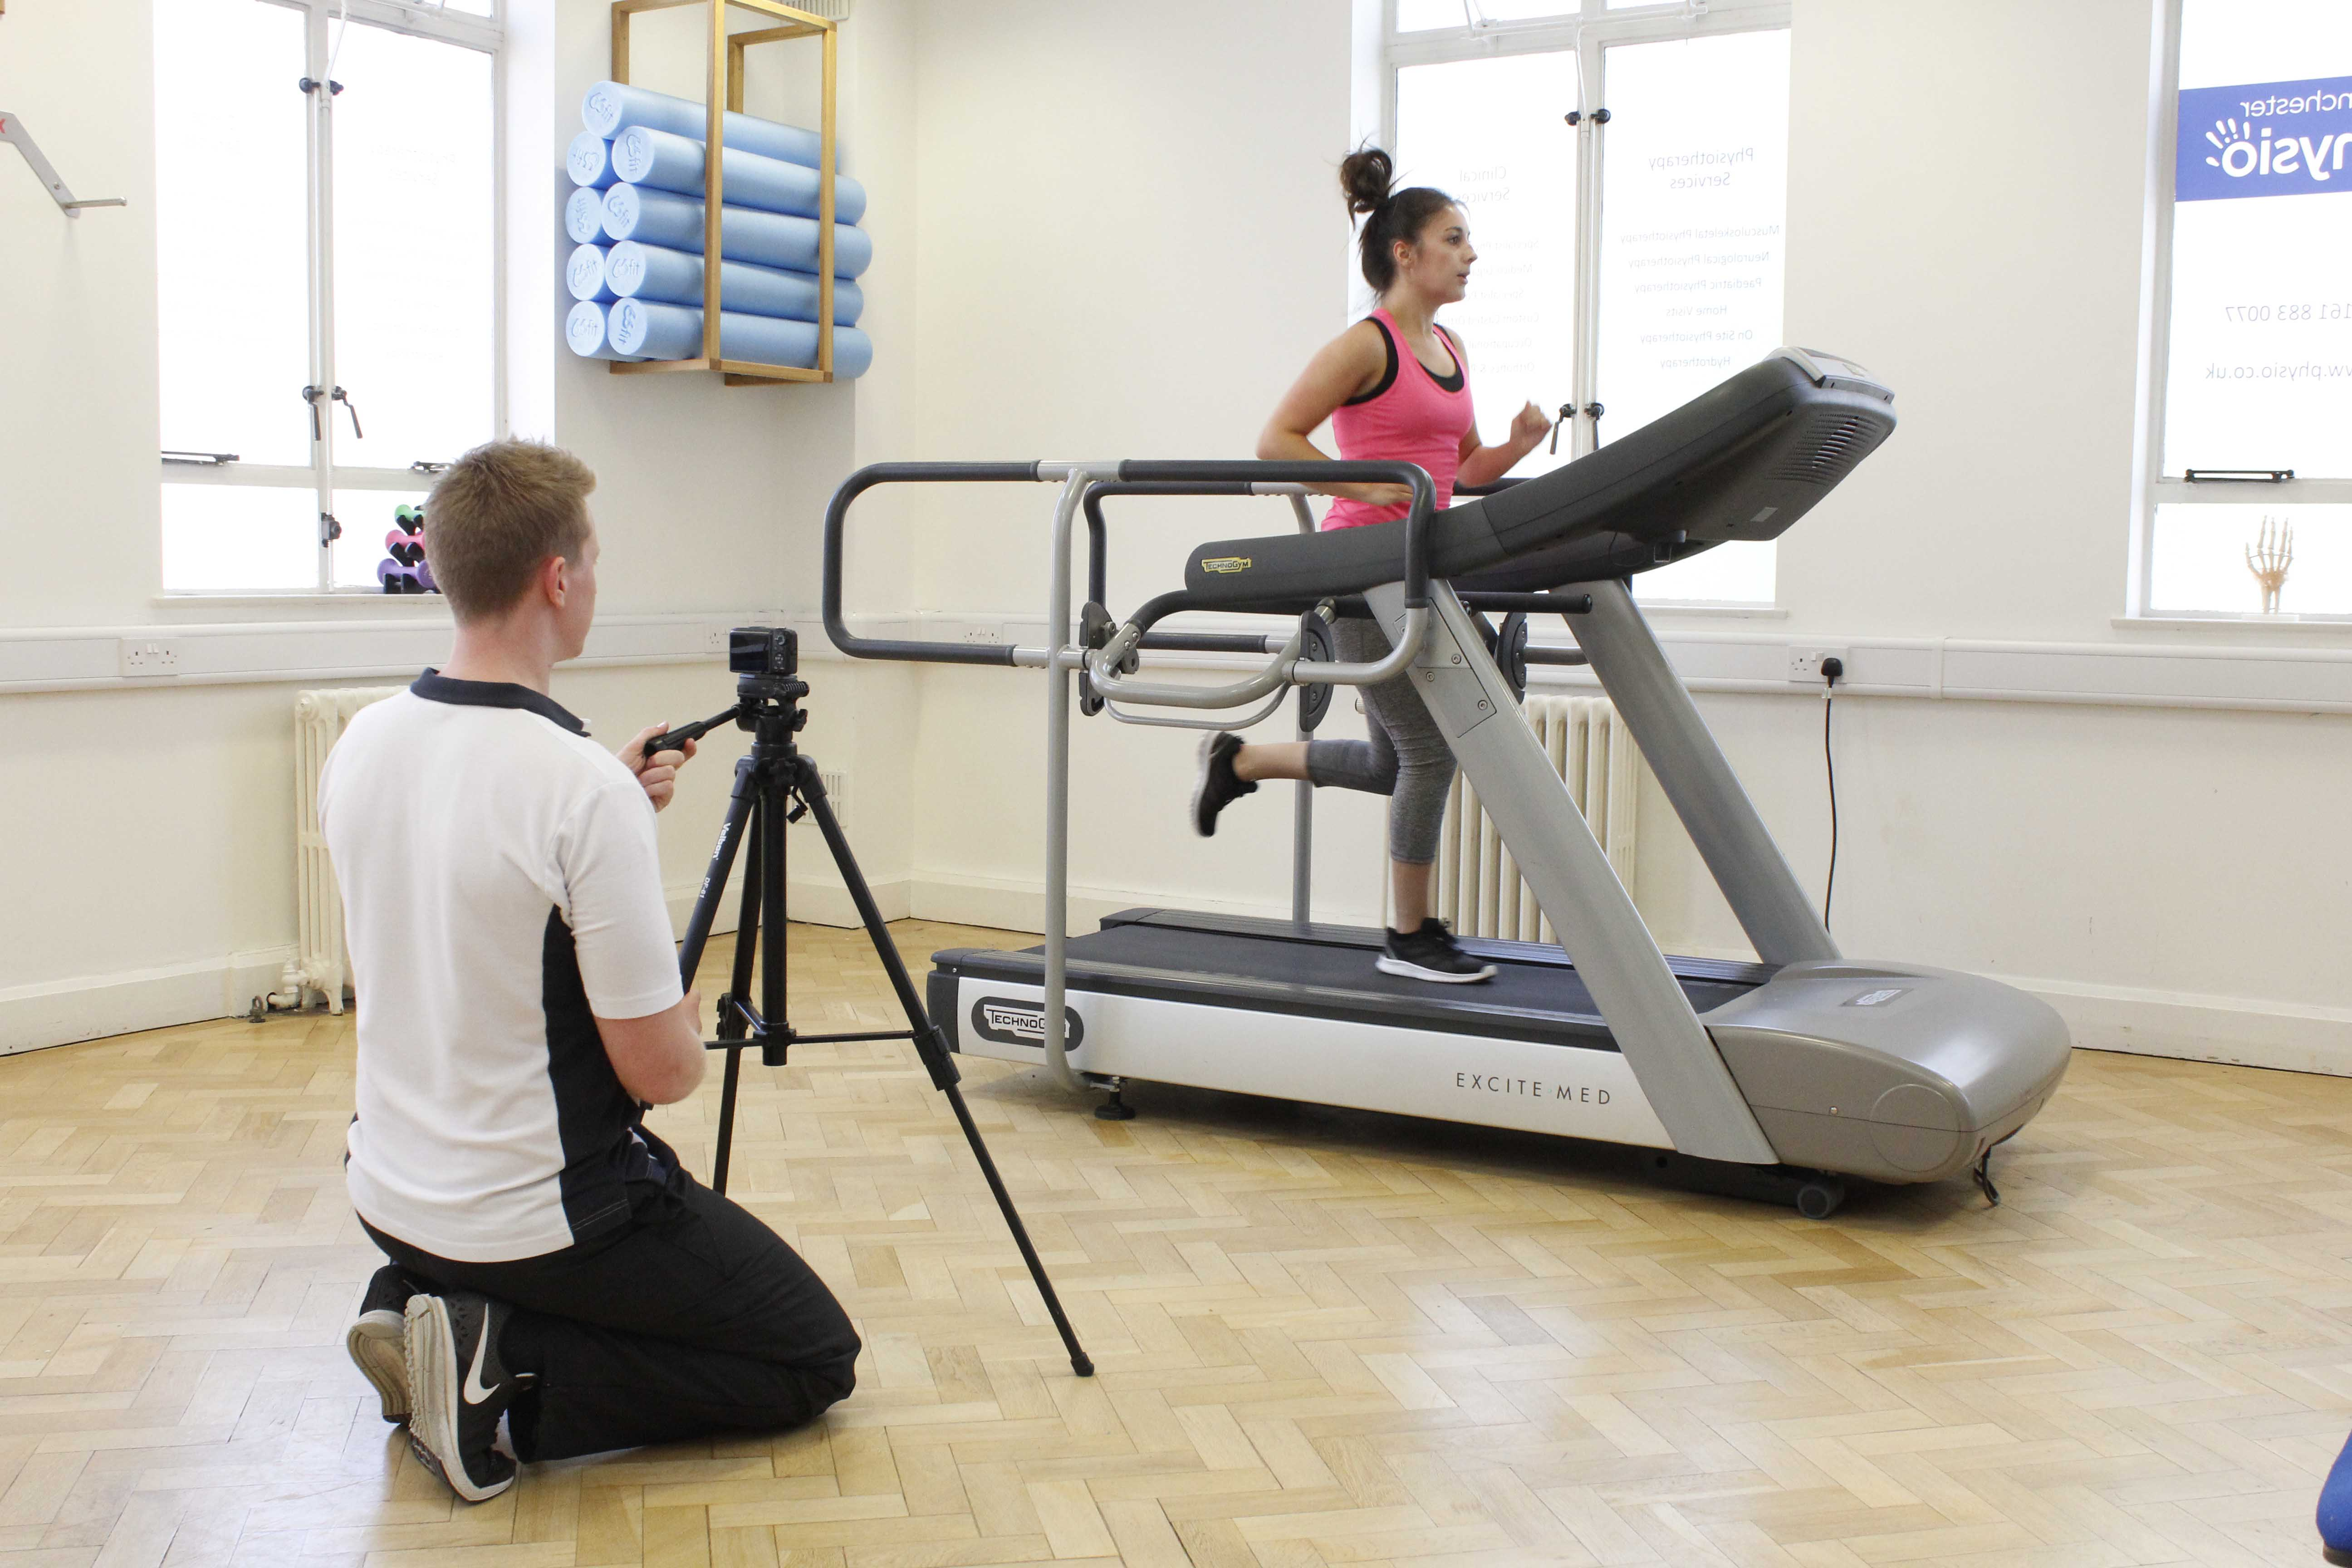 Biomechanical assessment of a runners gait by a specialist physiotherapist